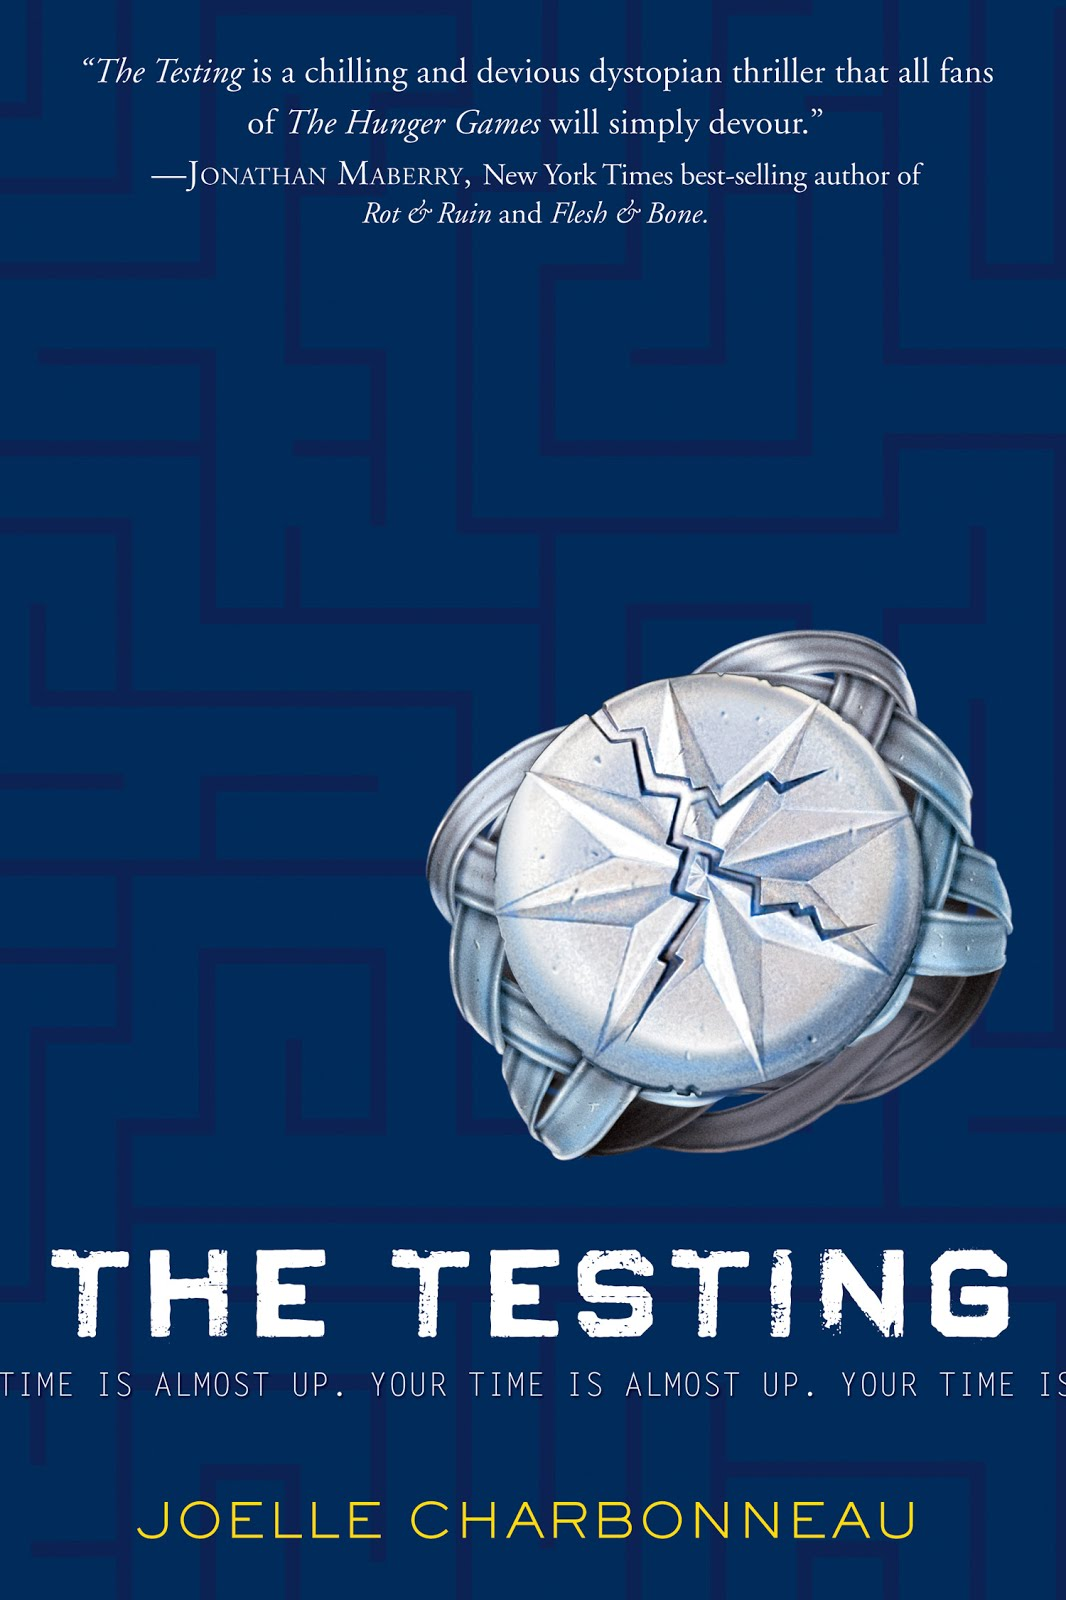 Book Review The Testing Alexandria Library Automation Software